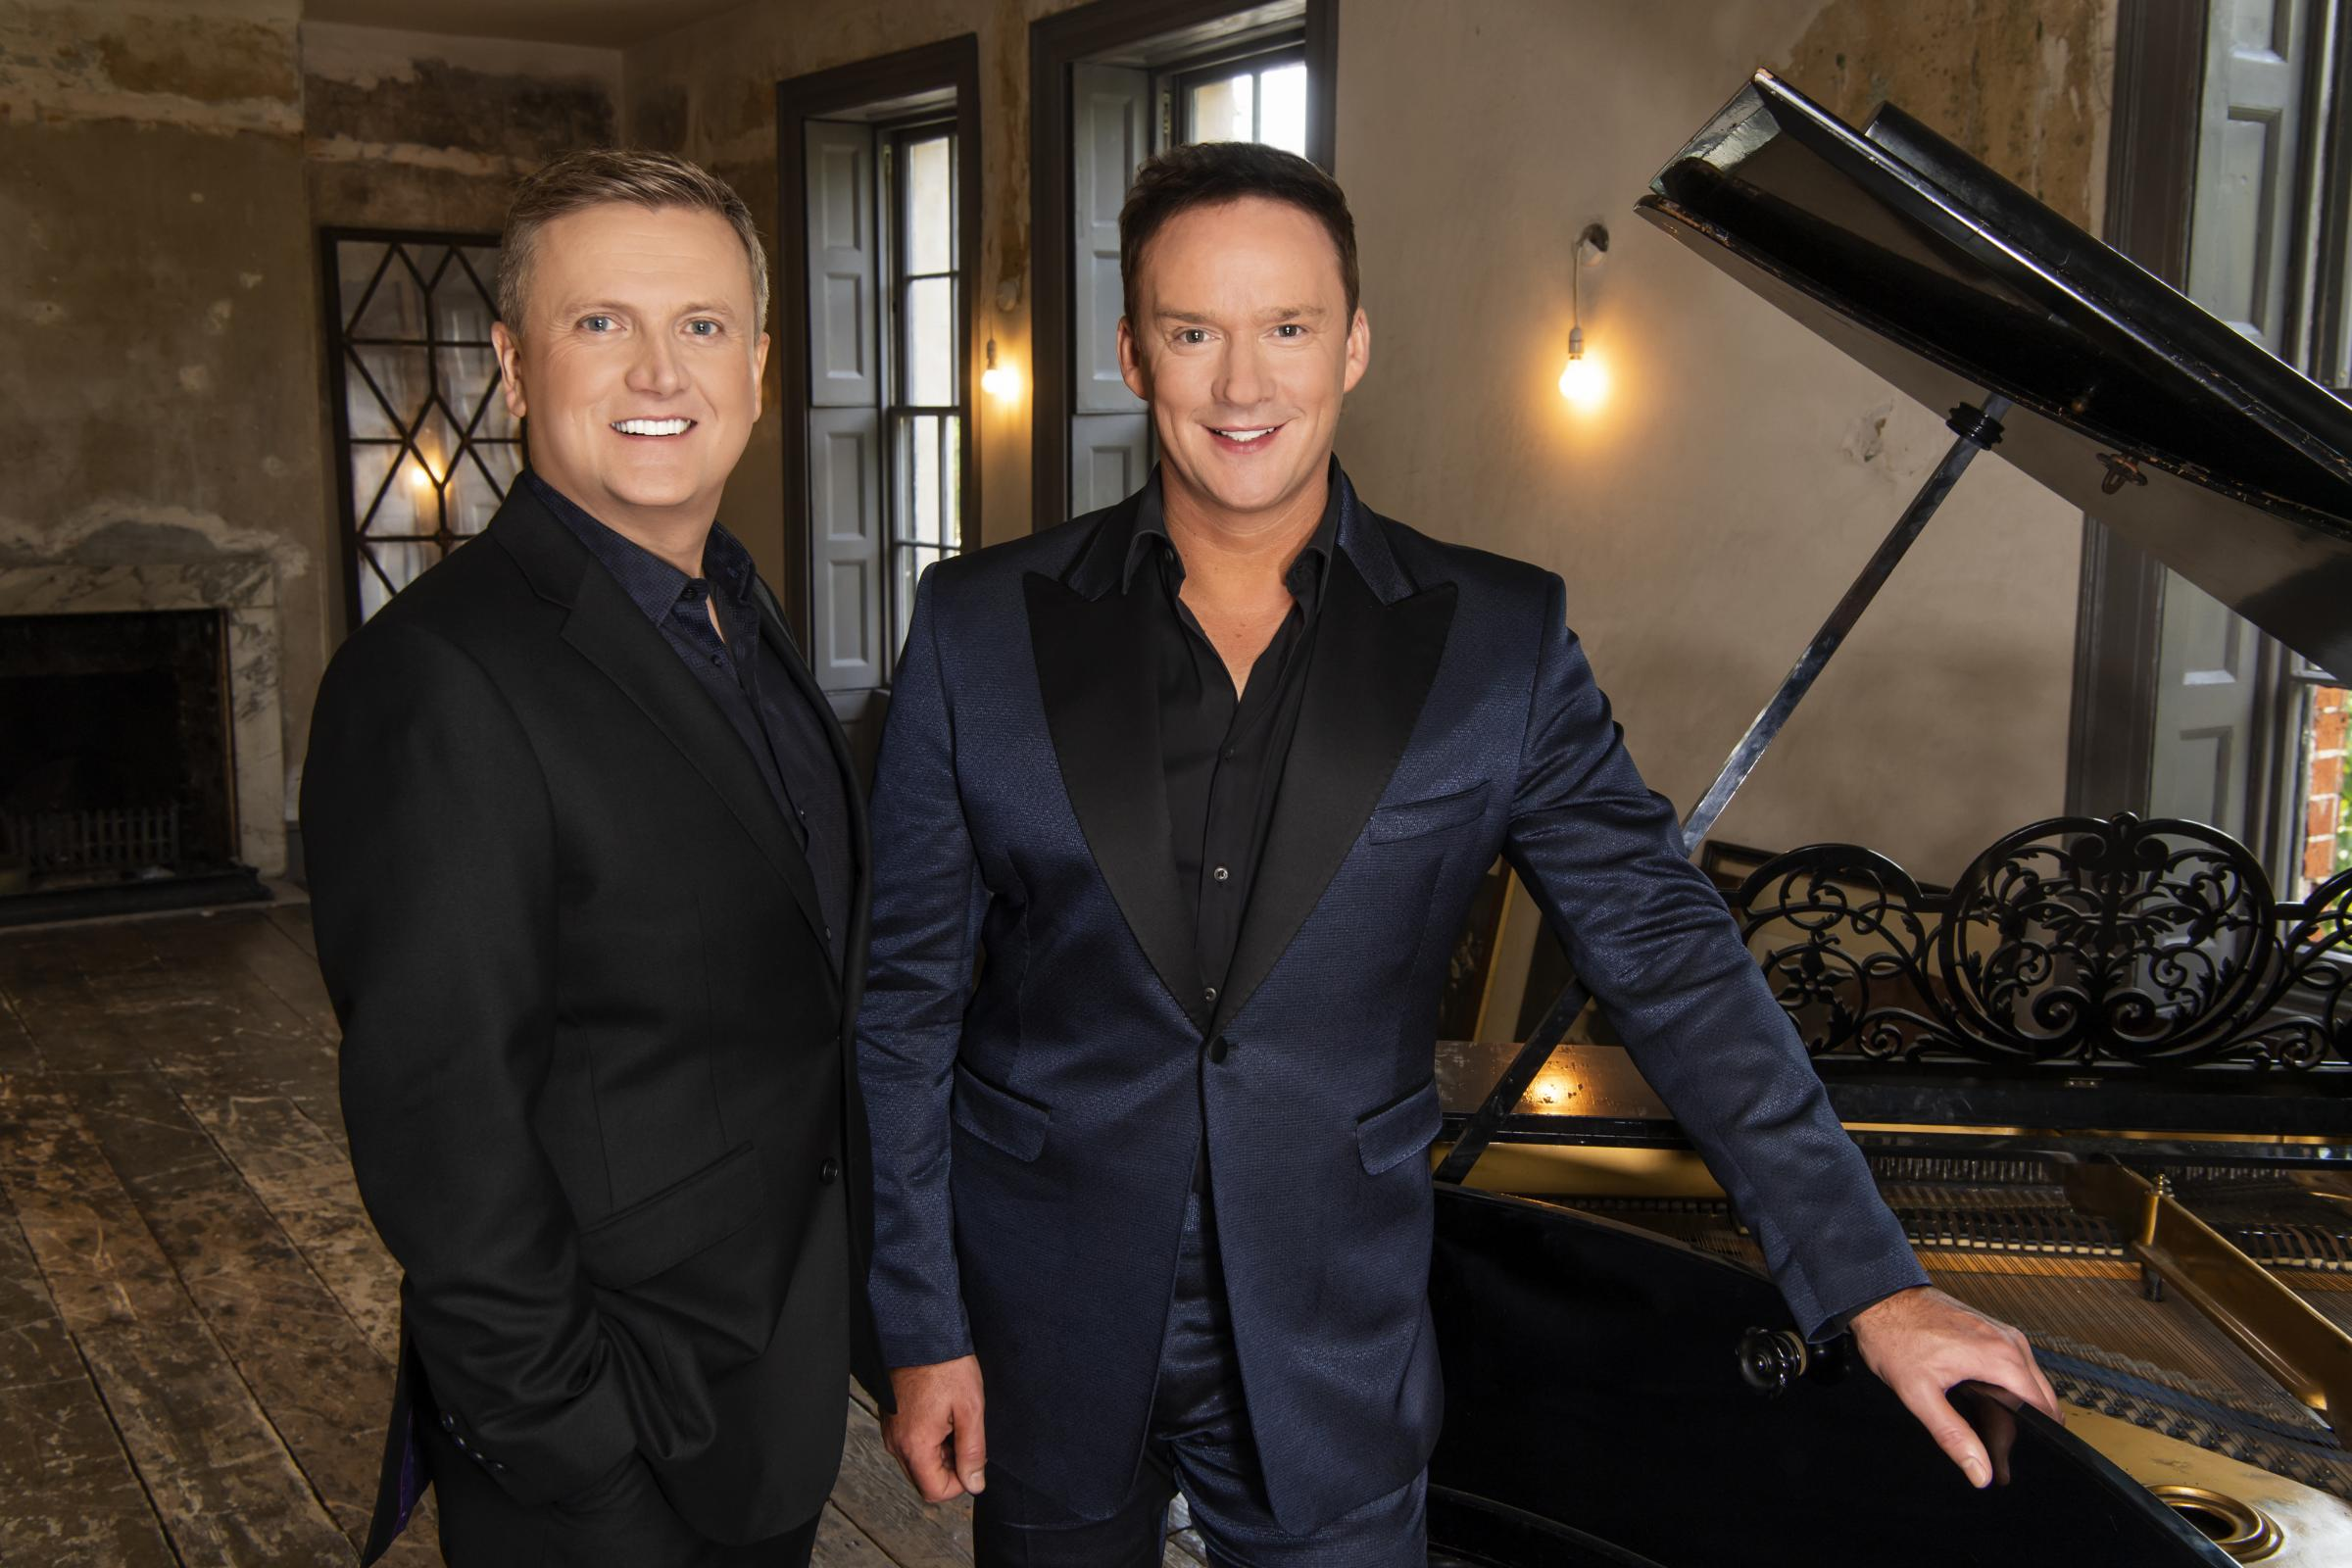 Aled Jones, Russell Watson and The Kingdom Choir appearing at Wight Proms next week